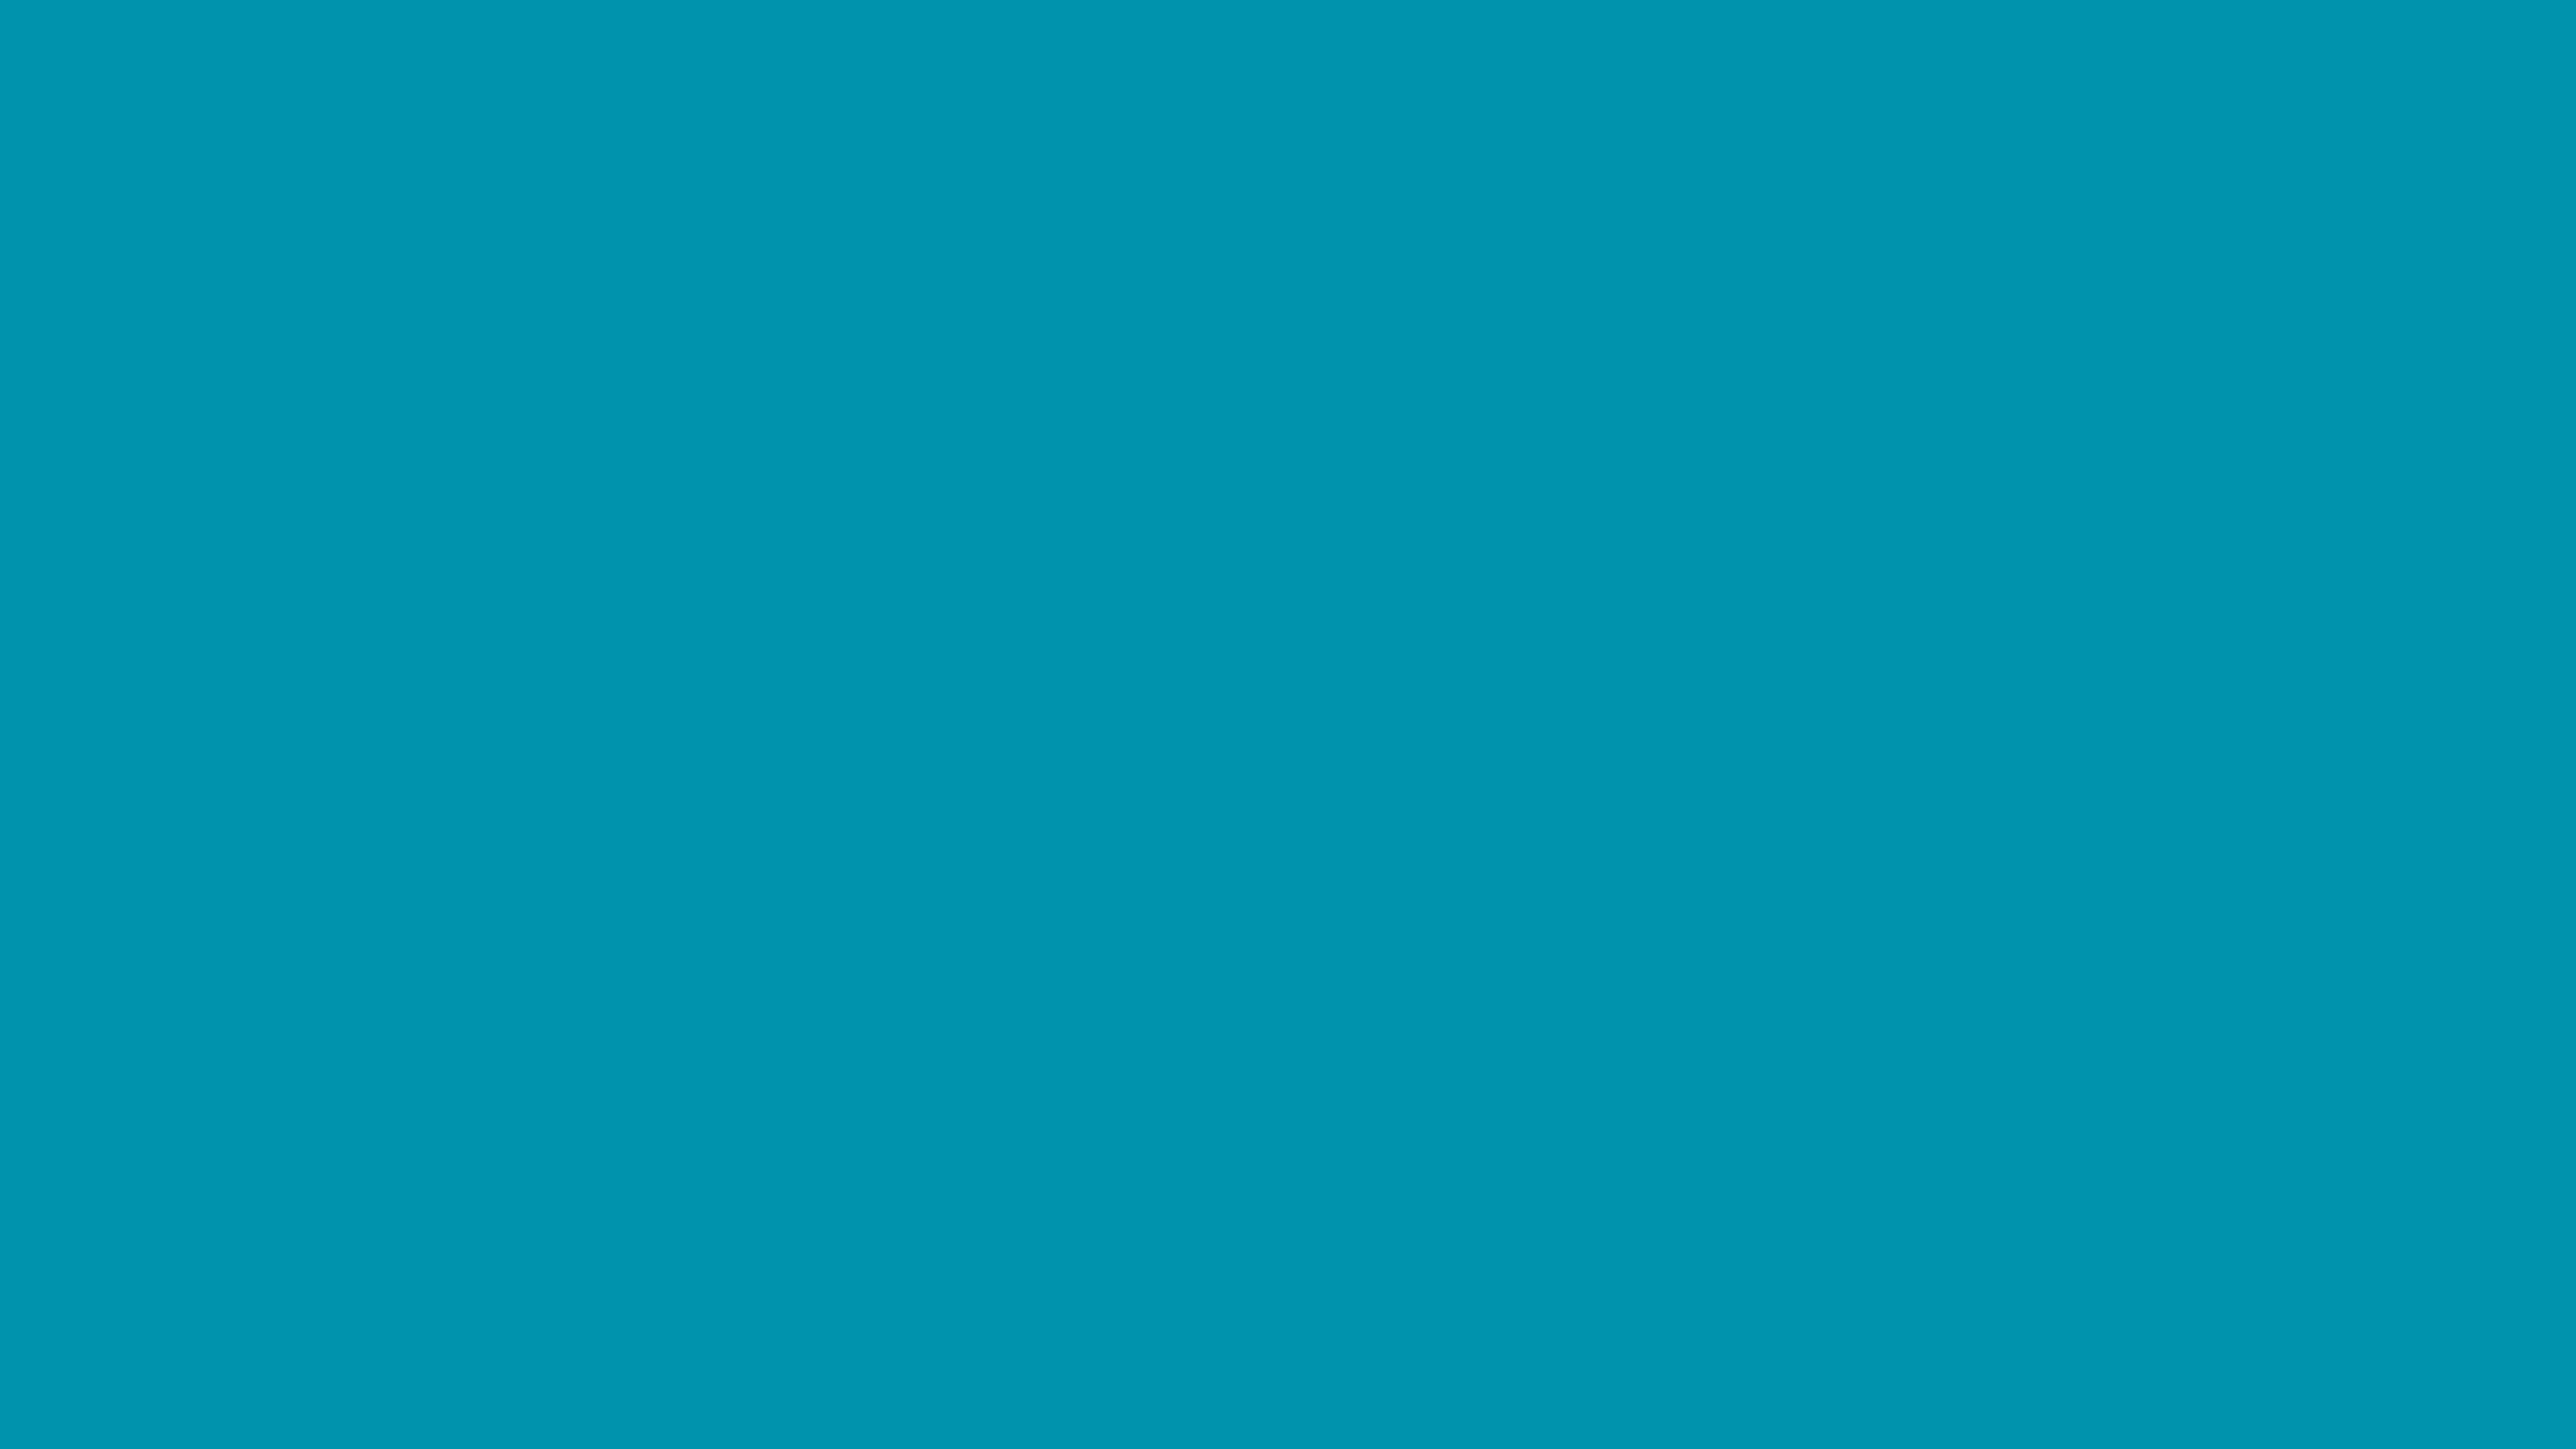 4096x2304 Blue Munsell Solid Color Background